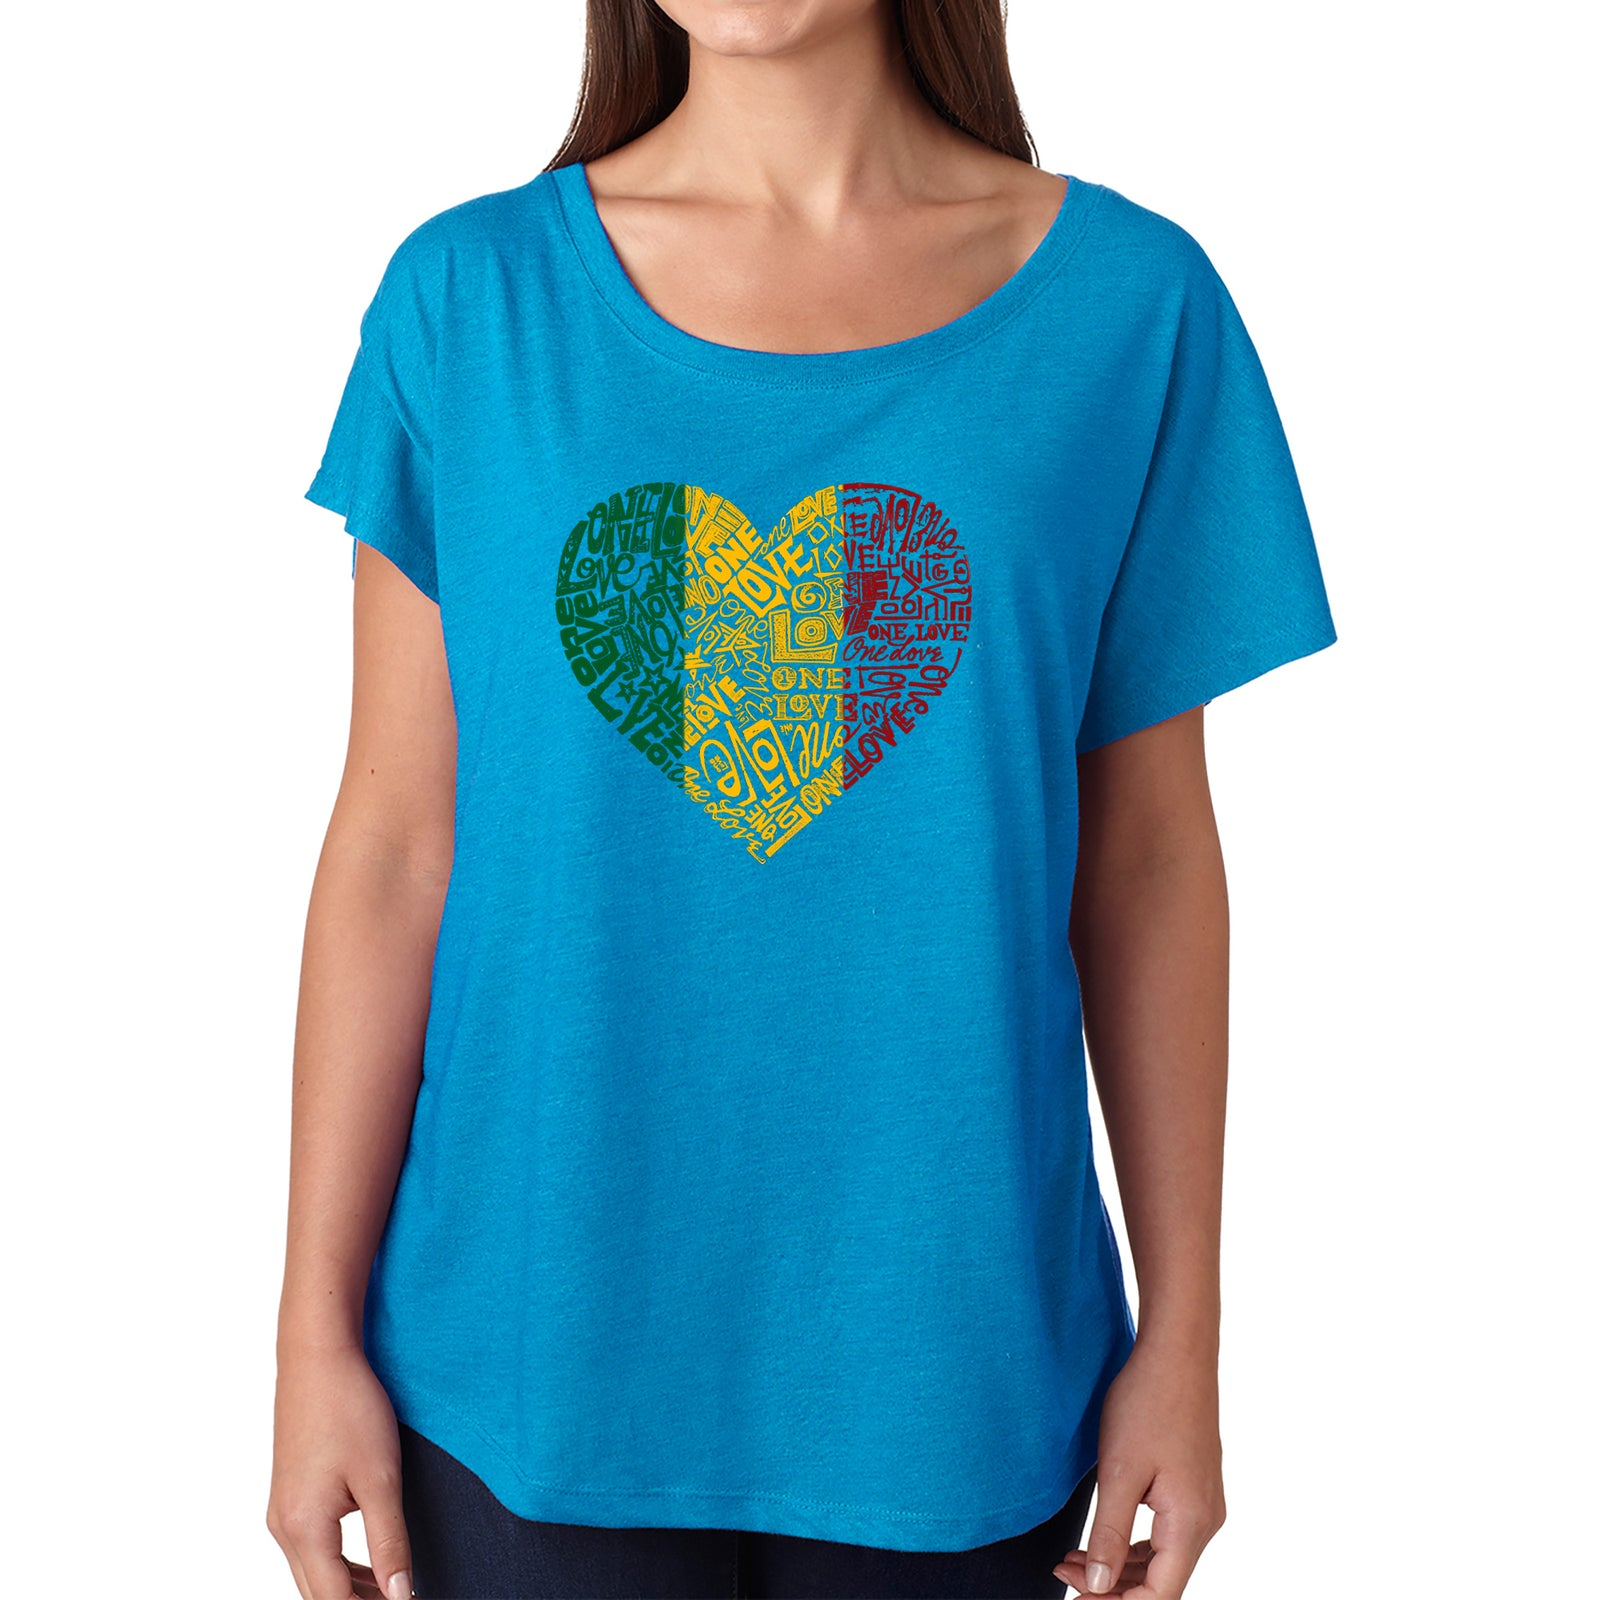 Women's Loose Fit Dolman Cut Word Art Shirt - One Love Heart